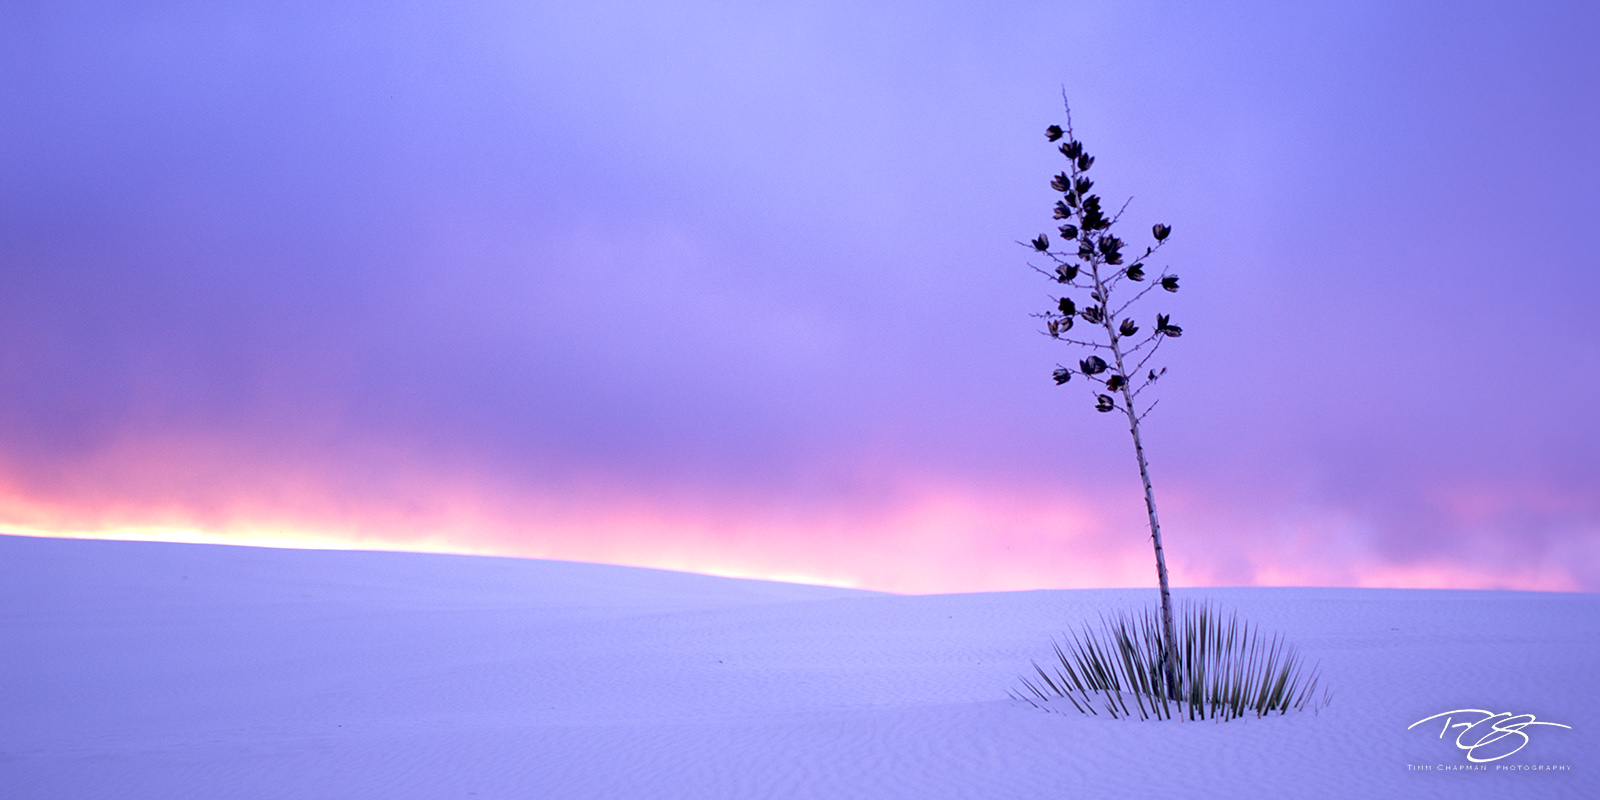 New Mexico, panorama, soaptree yucca, sunset, storm clouds, fiery sunset, pastel, purple, lavender sky, peace, calm, simplicity, white sands, white sands national monument, buried alive, snow, sand, w, photo